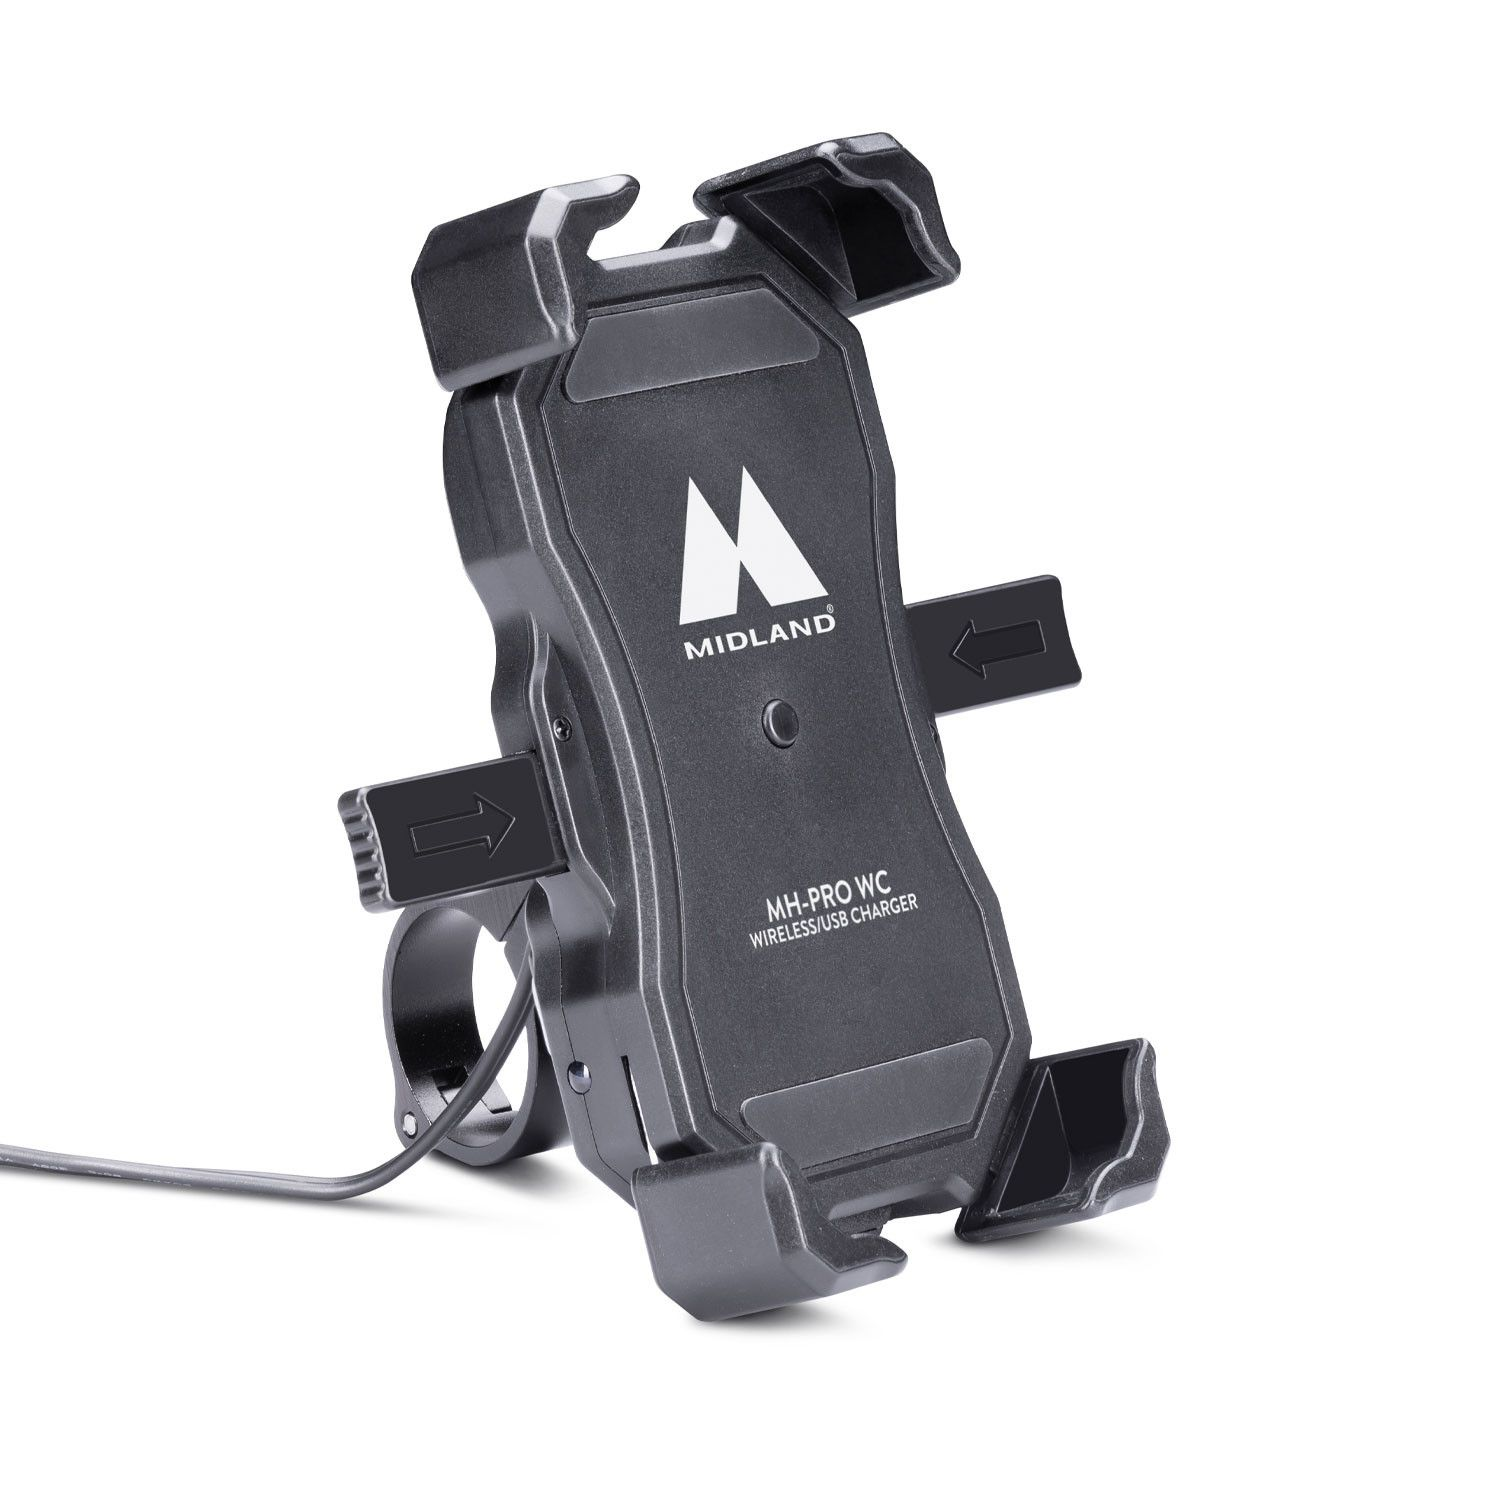 Midland MH Pro Wireless Charger